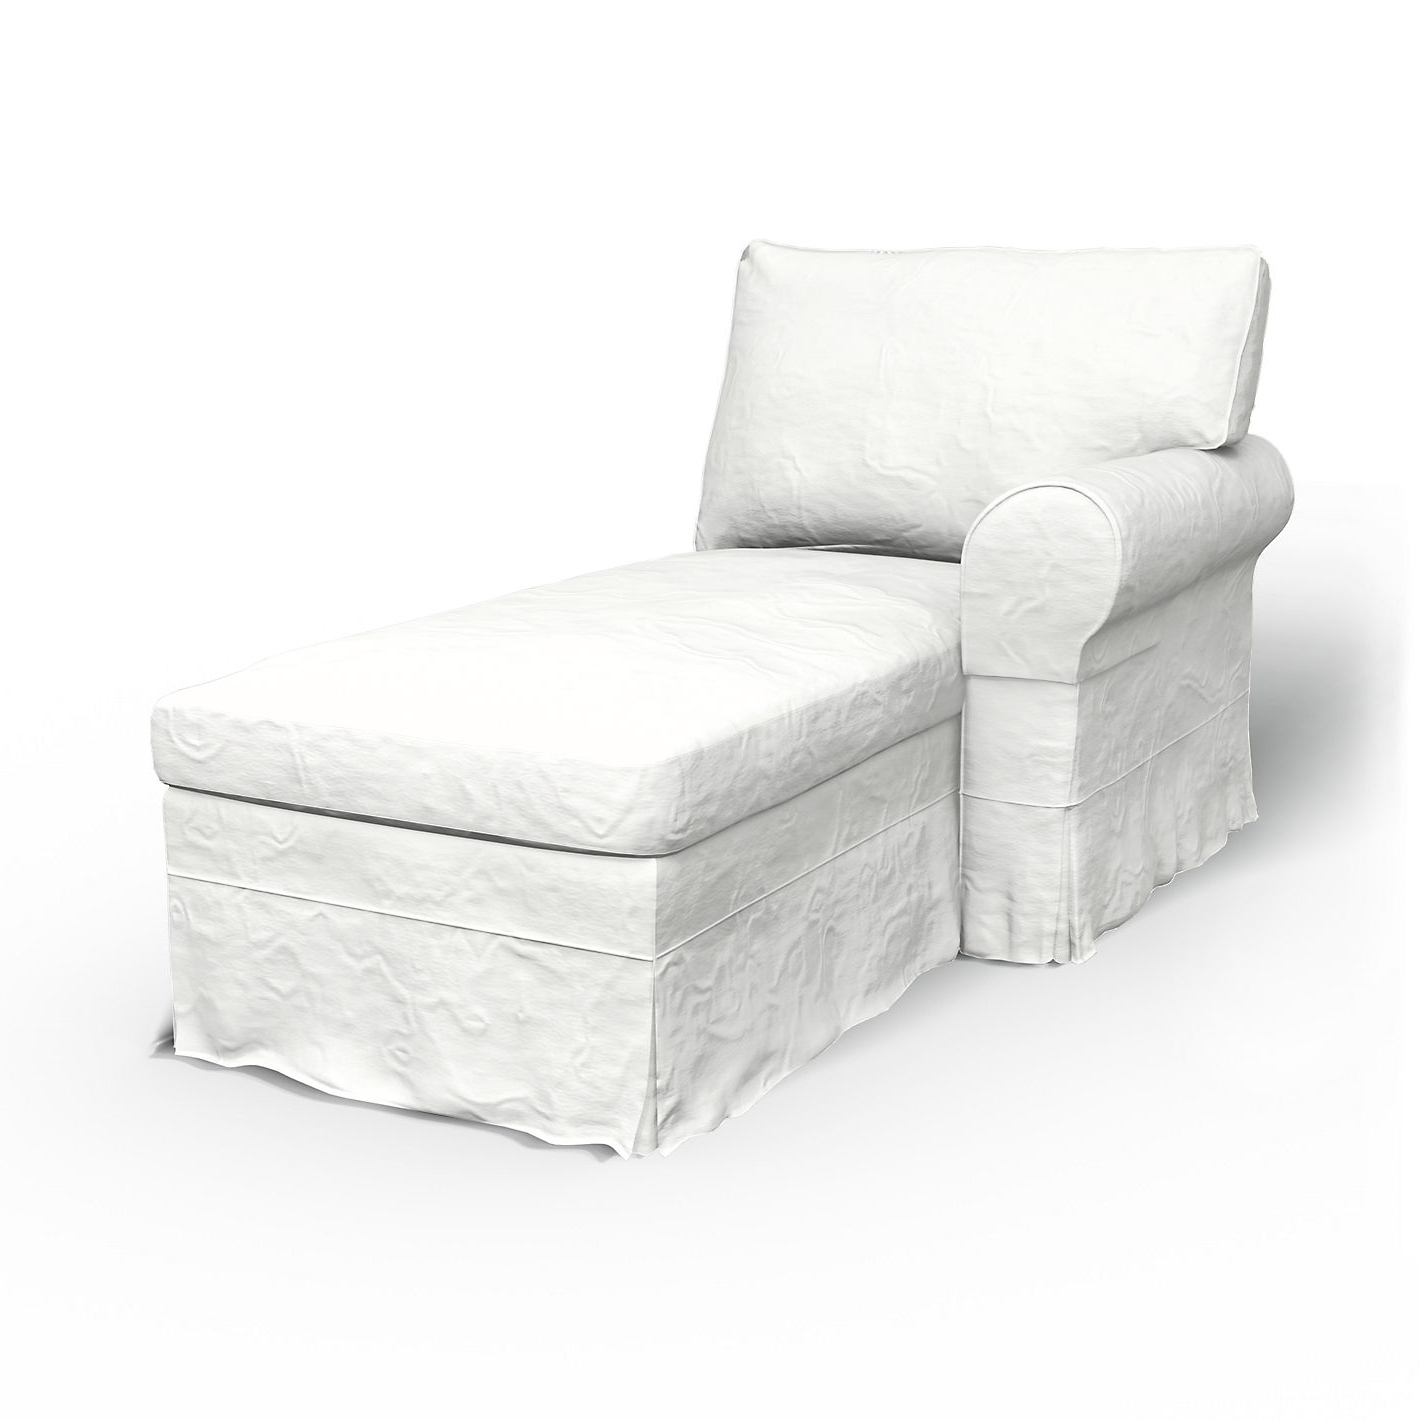 patio chair for a youtube how chaise to furniture cover make lounge watch